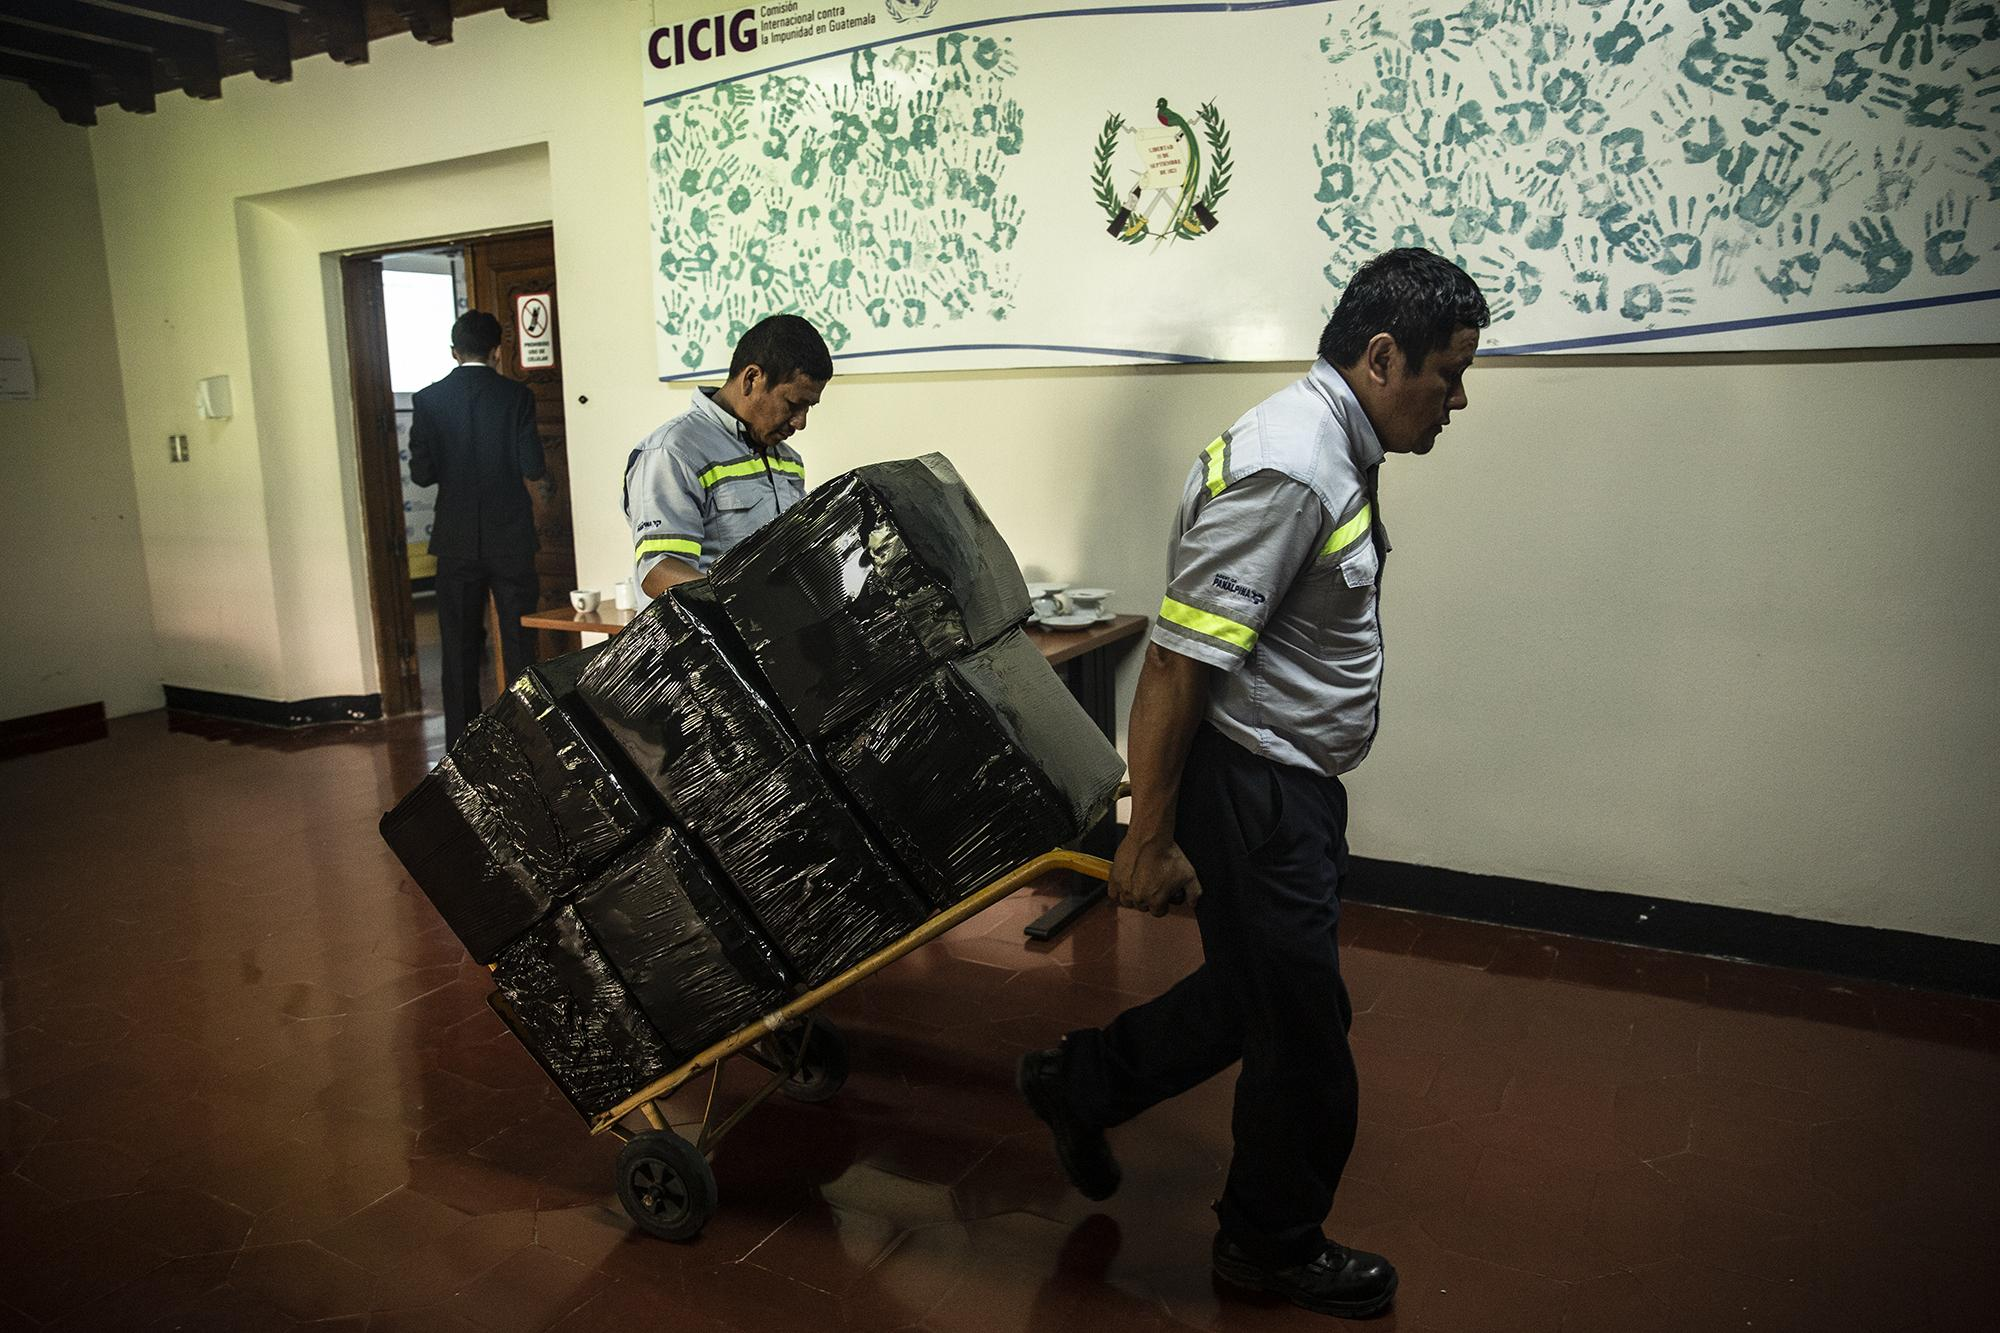 Photo caption: On August 30, 2019, employees of a moving company removed the last stacks of documents from CICIG facilities in Guatemala city. The commission completed its mandate on September 3, 2019, when then-president Jimmy Morales decided not to renew its term. Photo: Carlos Barrera/El Faro